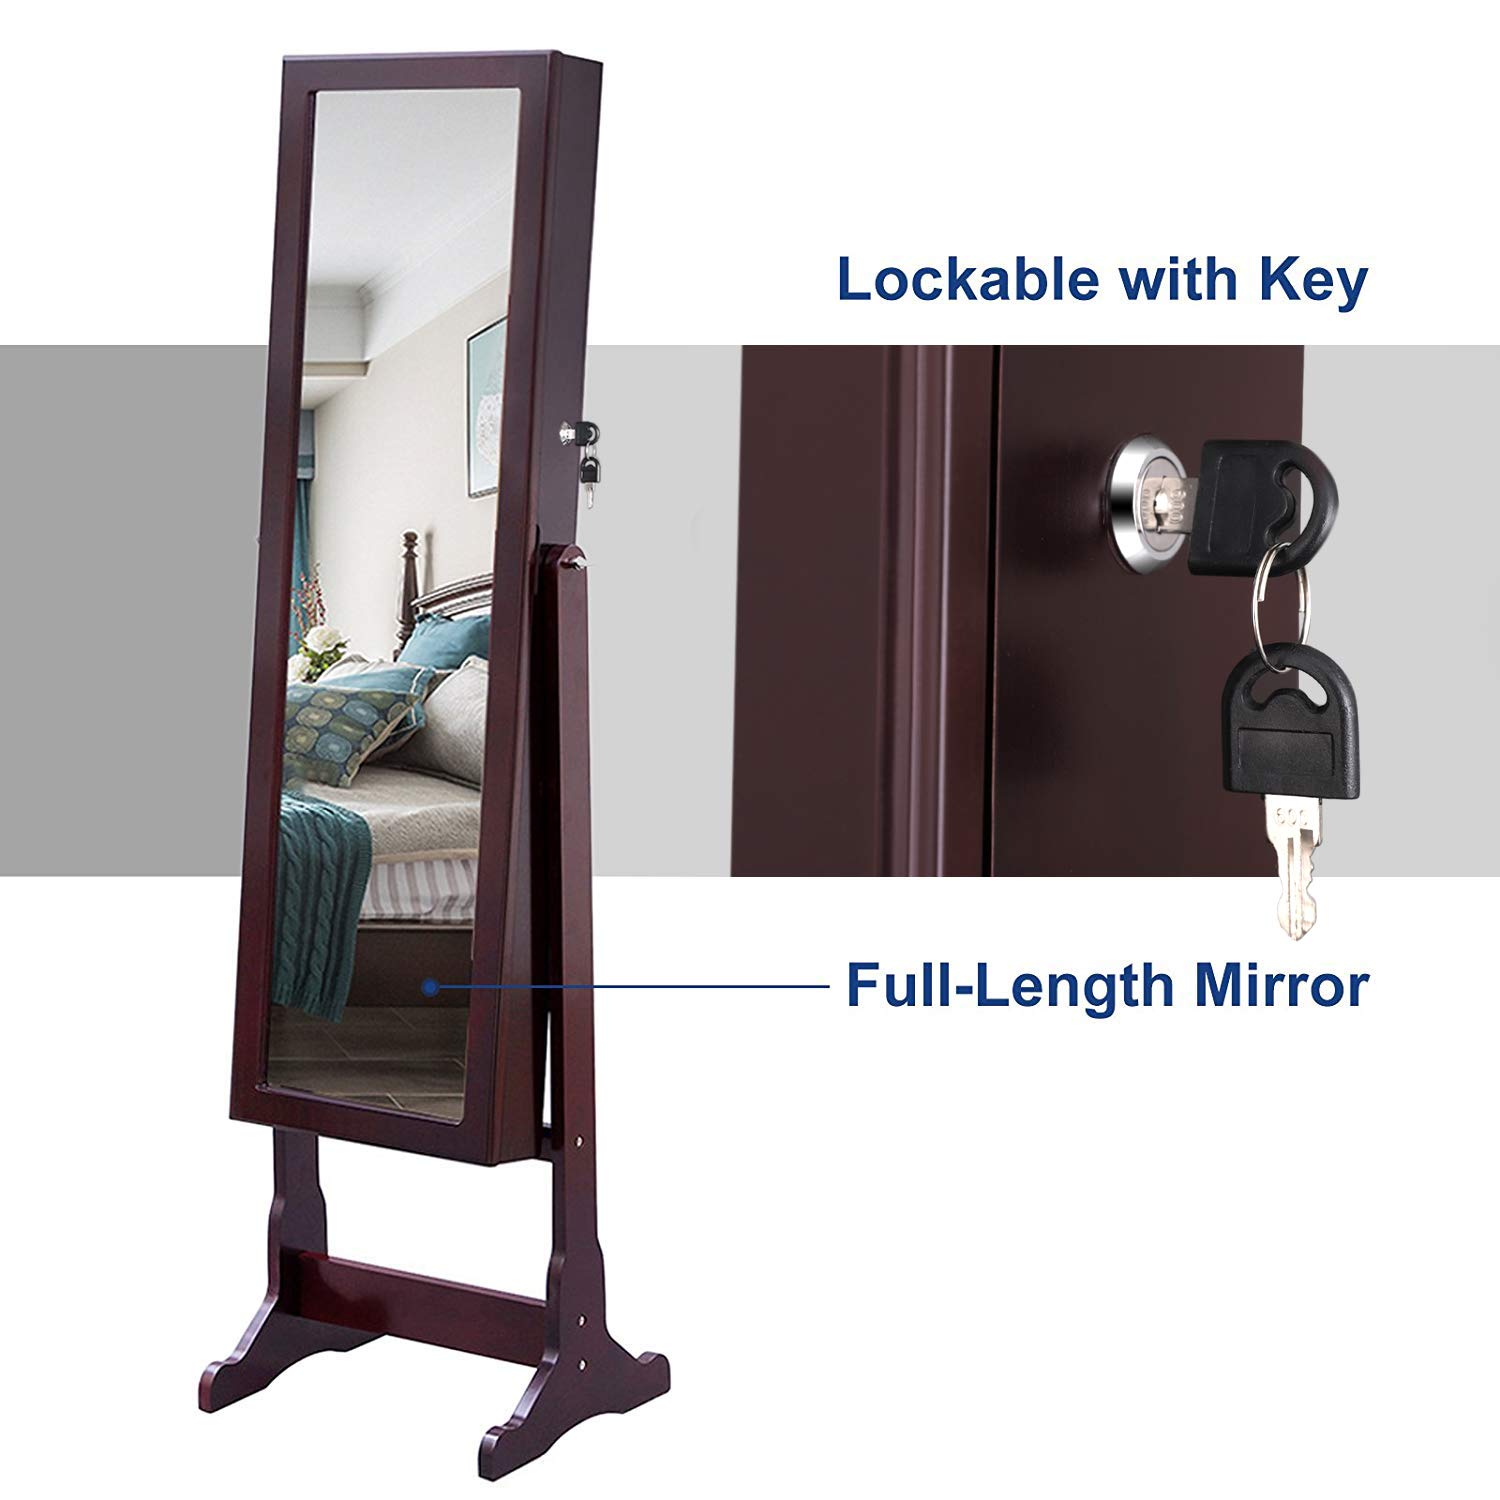 SONGMICS 6 LEDs Mirror Jewelry Cabinet Lockable Standing Mirrored Jewelry Armoire Organizer 2 Drawers Brown UJJC94K by SONGMICS (Image #7)